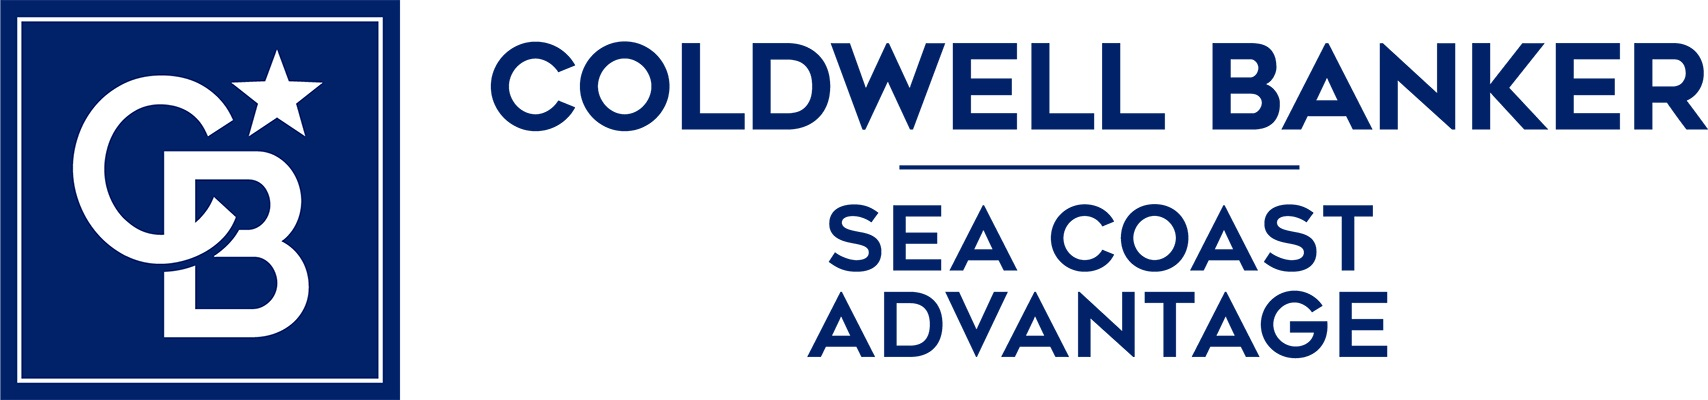 Ashley Eastman - Coldwell Banker Sea Coast Advantage Realty Logo